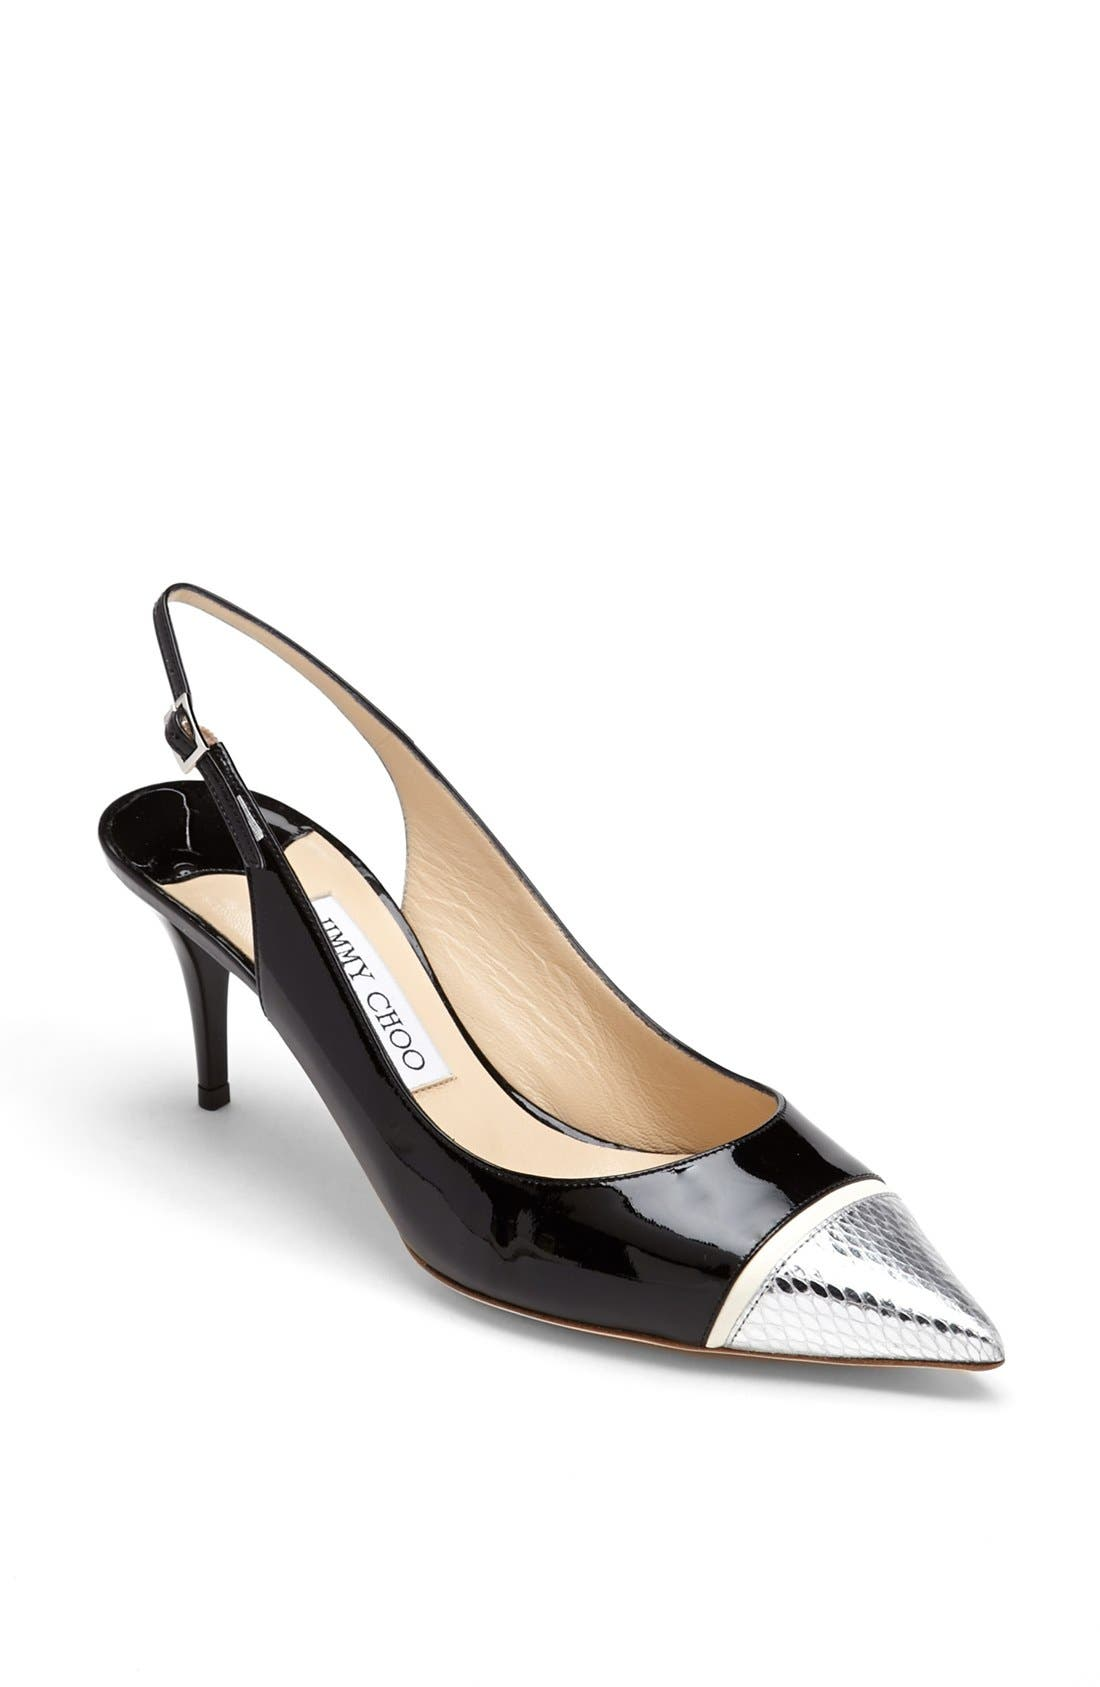 Alternate Image 1 Selected - Jimmy Choo 'Acapulco' Pump